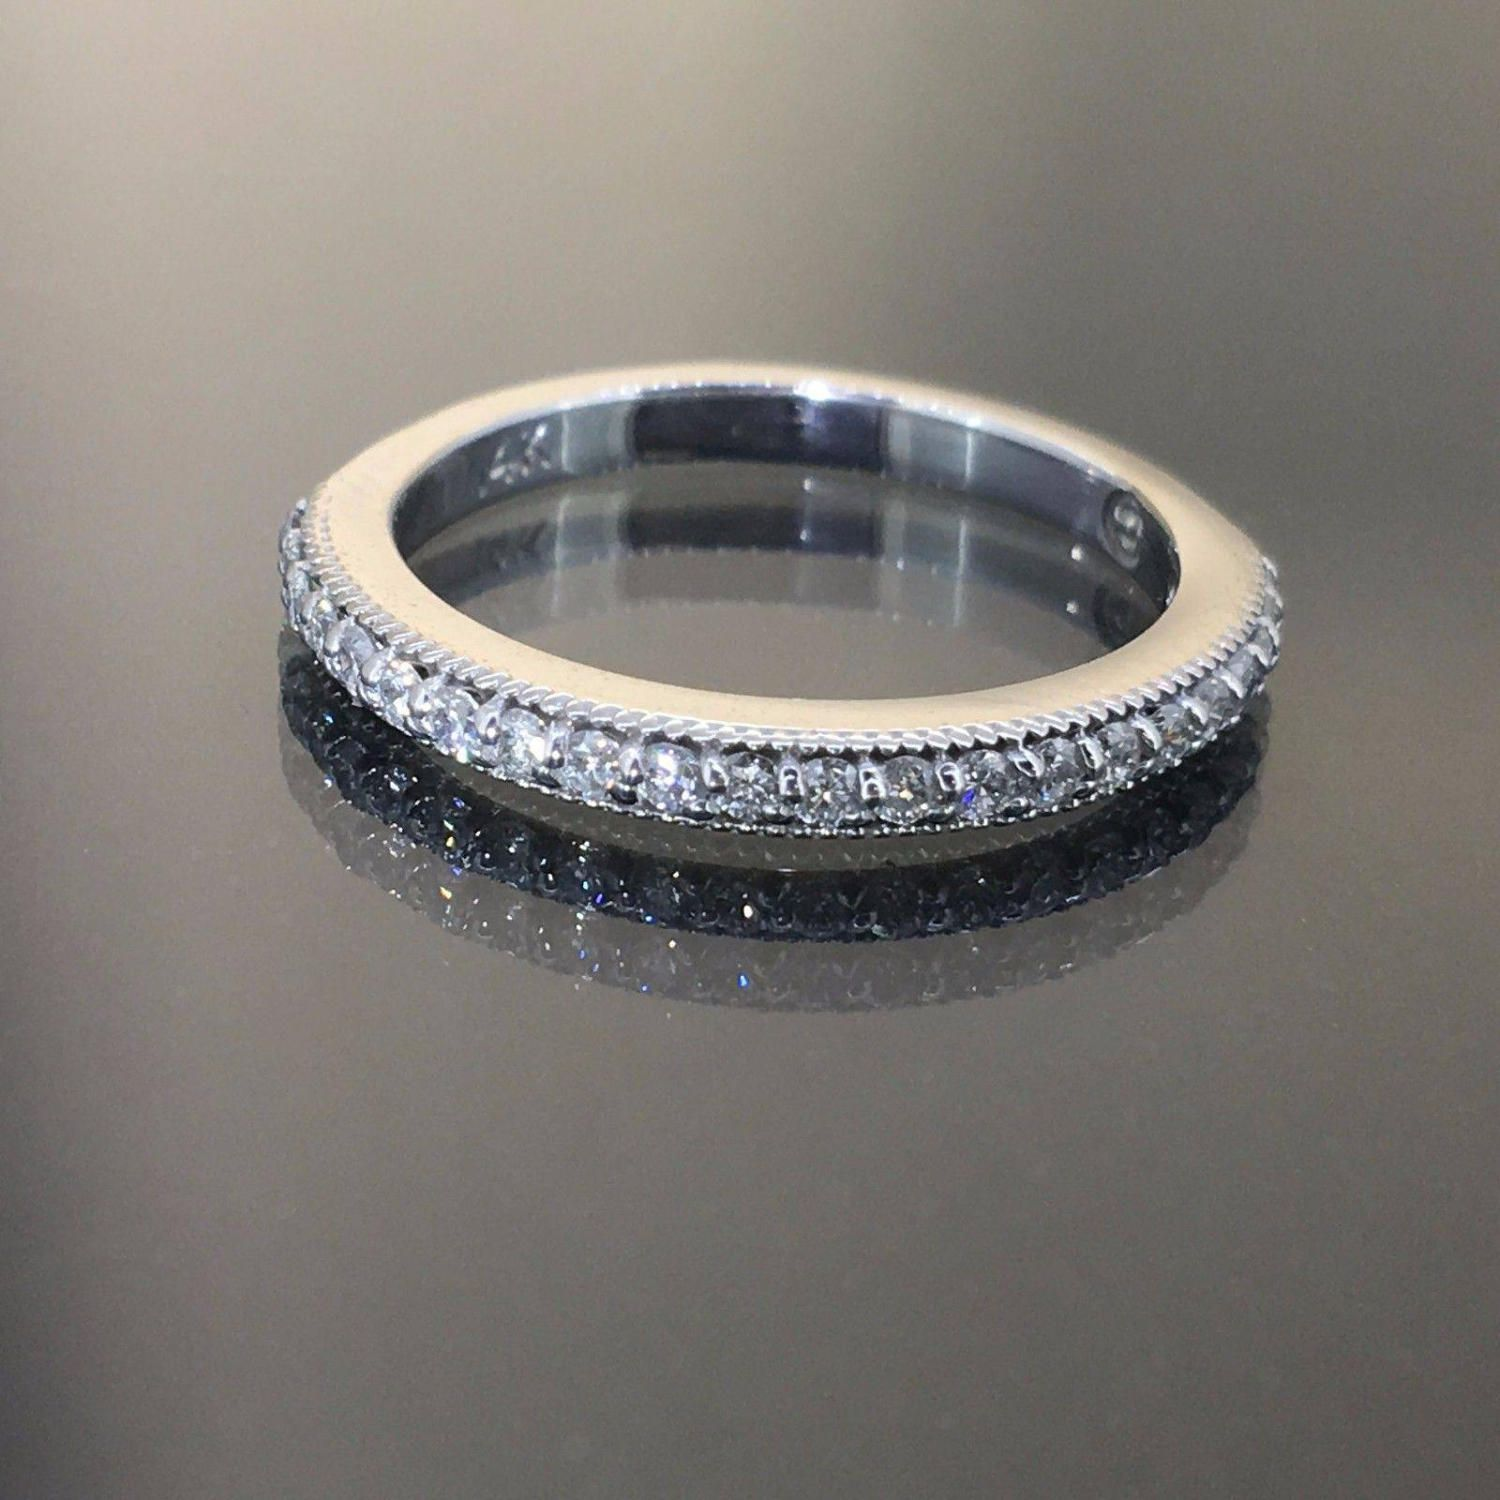 Gorgeous 14k White gold Natural round cut Diamond Pave set Ring fancy band .45ct by crystalanchor on Etsy